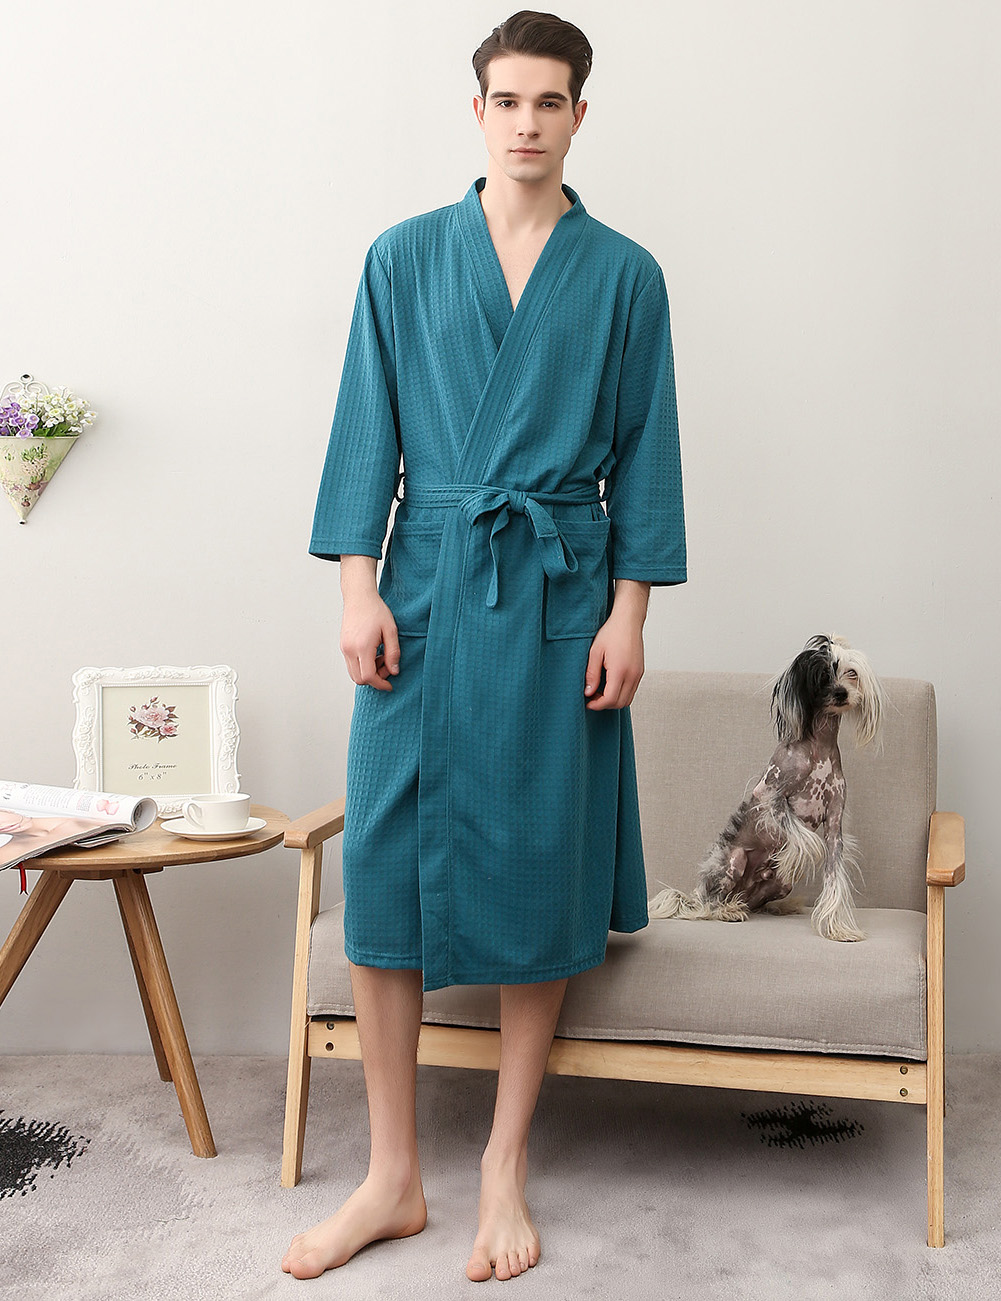 //cdn.affectcloud.com/feelingirldress/upload/imgs/2019-06-29/SY190097-GN5/SY190097-GN5.jpg